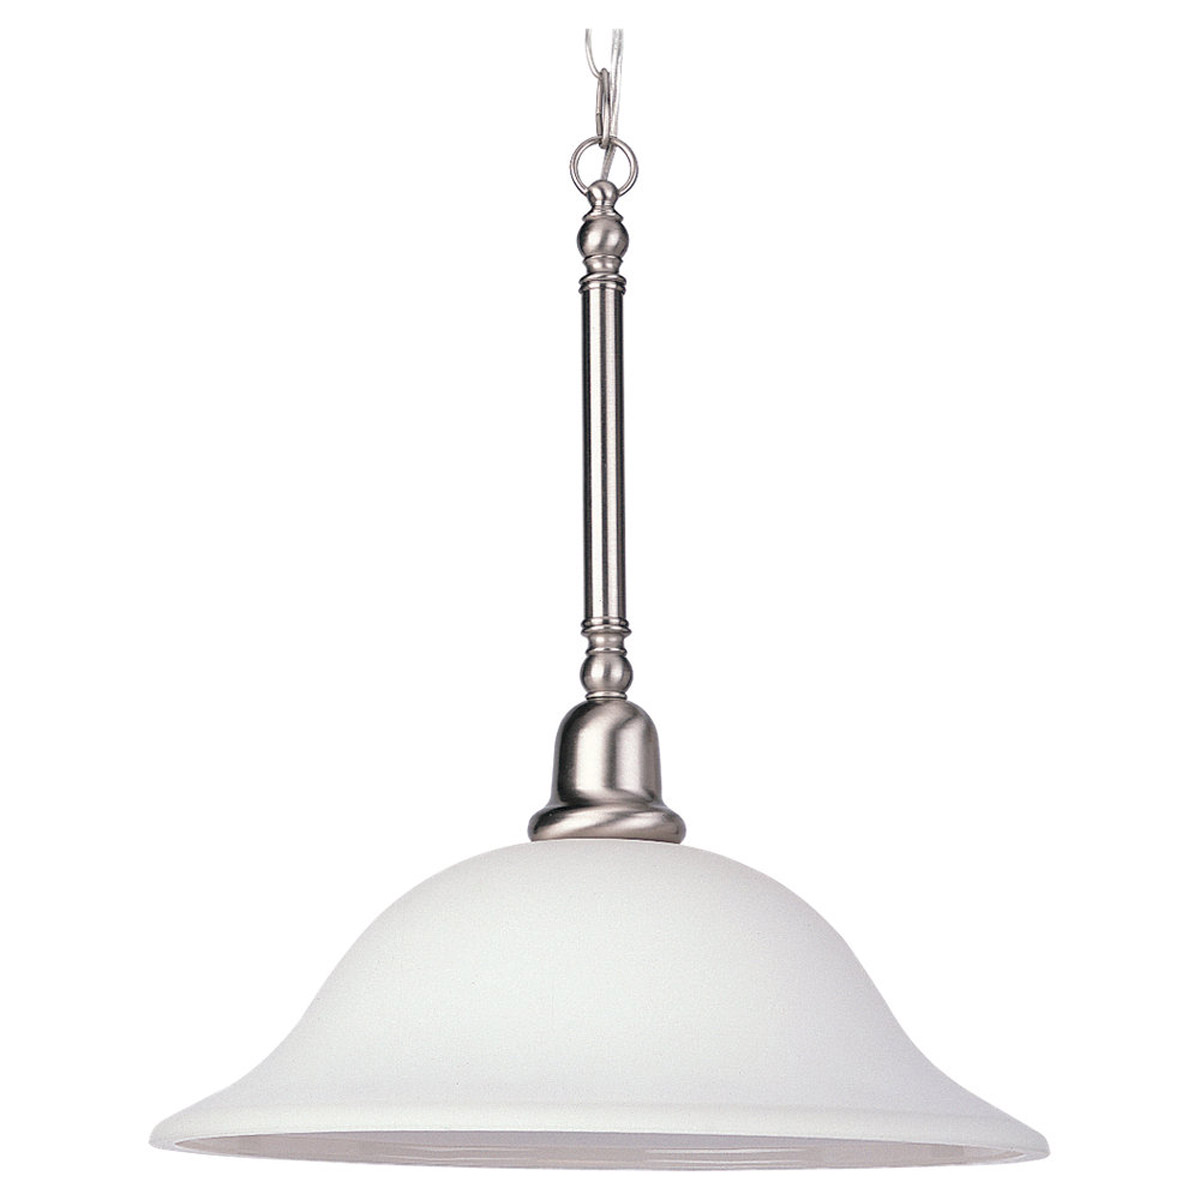 Sea Gull 66060-962 Sussex 1 Light 16 inch Brushed Nickel Pendant Ceiling Light in Satin White Glass photo